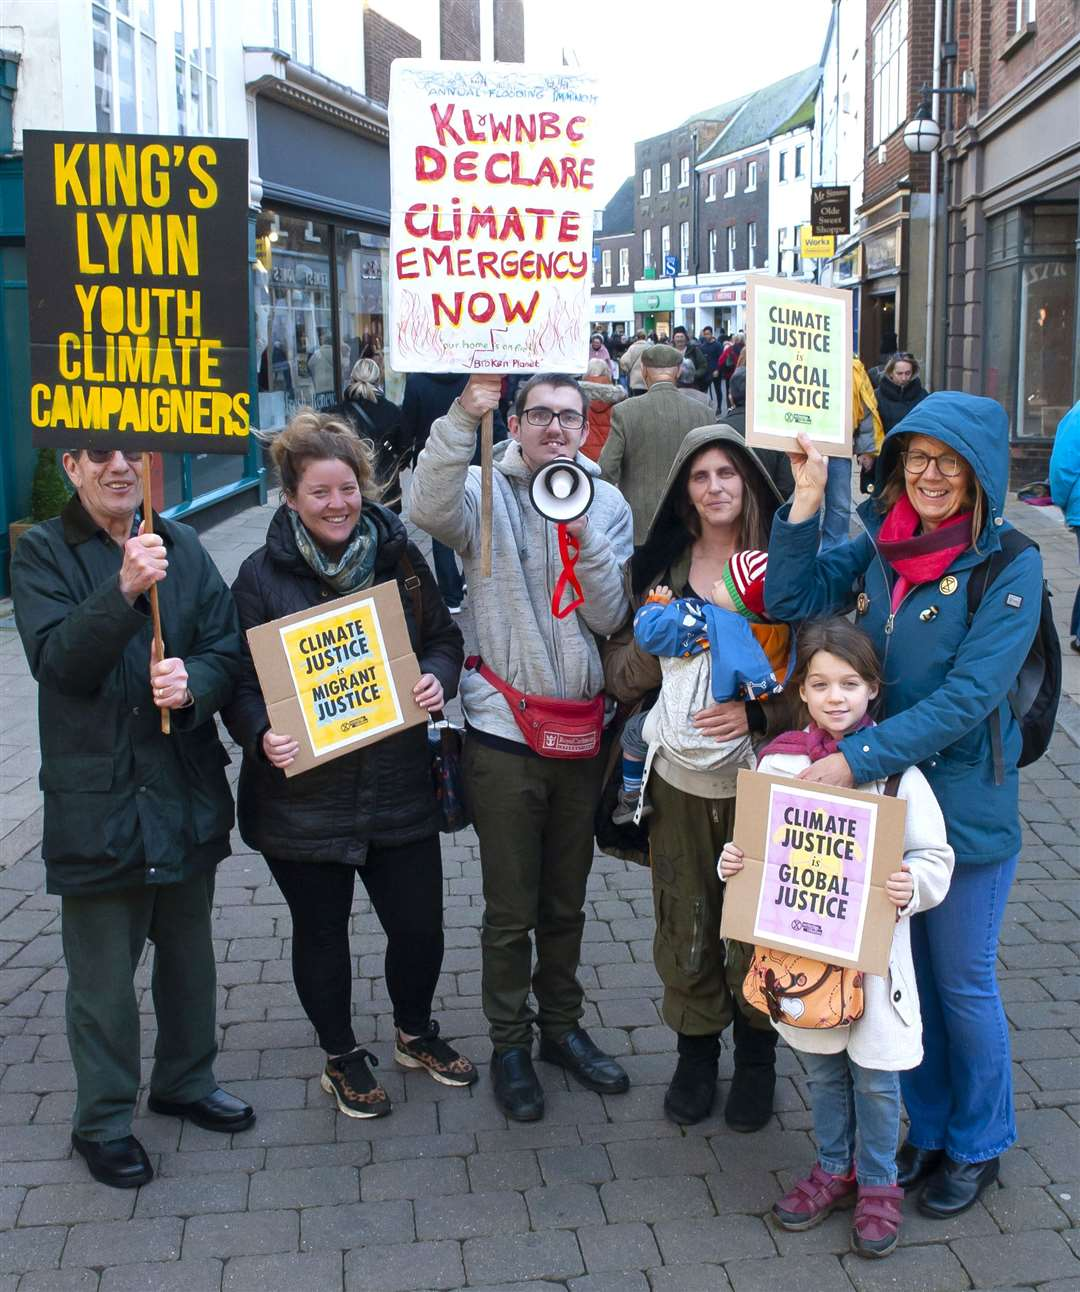 King's Lynn Youth Climate Campaigners Pictured in centre Jordan Stokes (Organiser) with supporters in King's Lynn Town Centre.. (26471177)